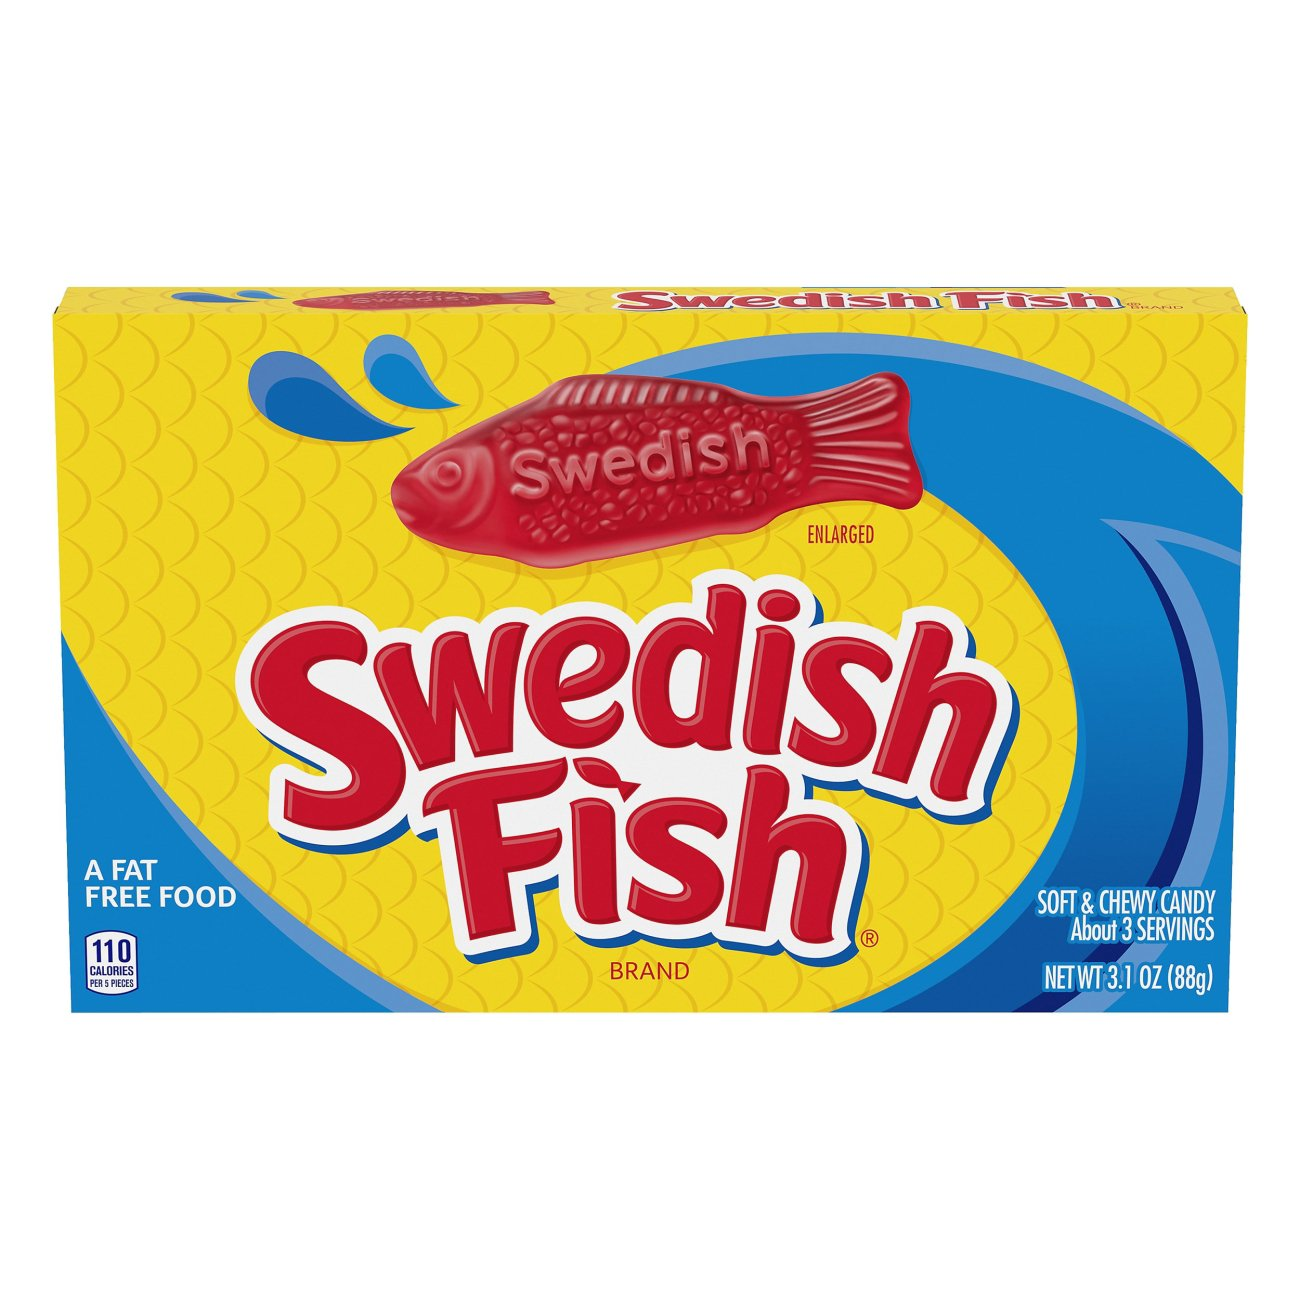 Swedish Fish Soft & Chewy Candy Theater Box - Shop Candy at HEB